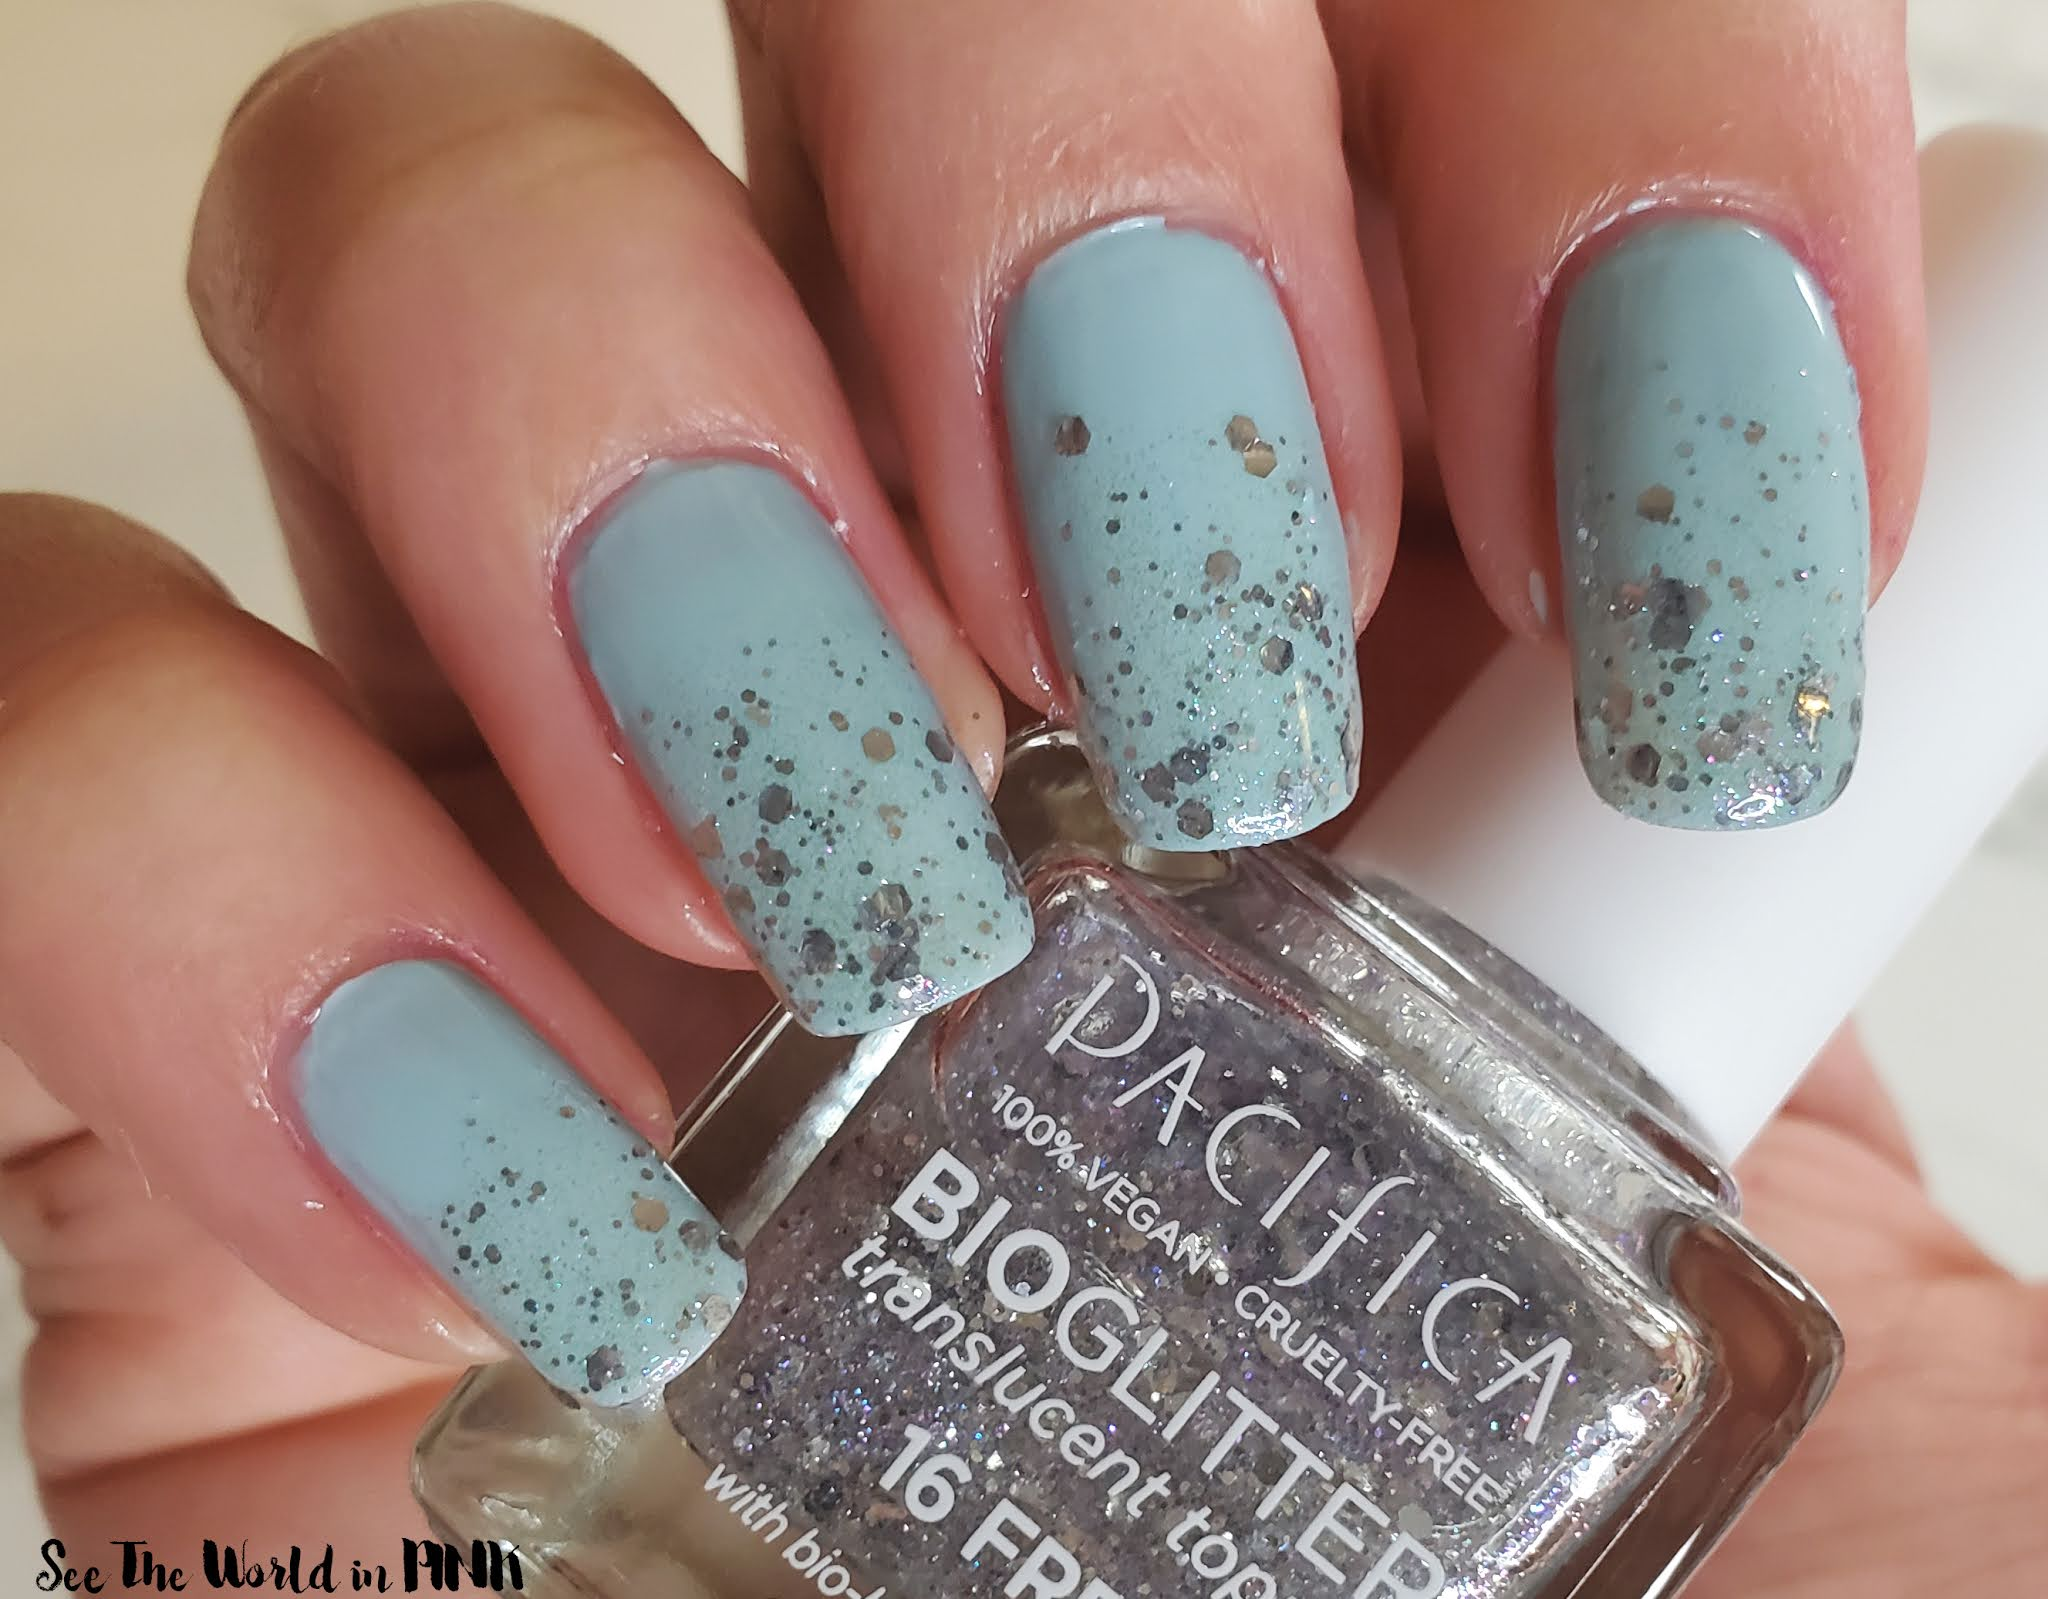 Manicure Tuesday - Pacifica Beauty Plant Magic Polish & BioGlitter Translucent Topper Polish